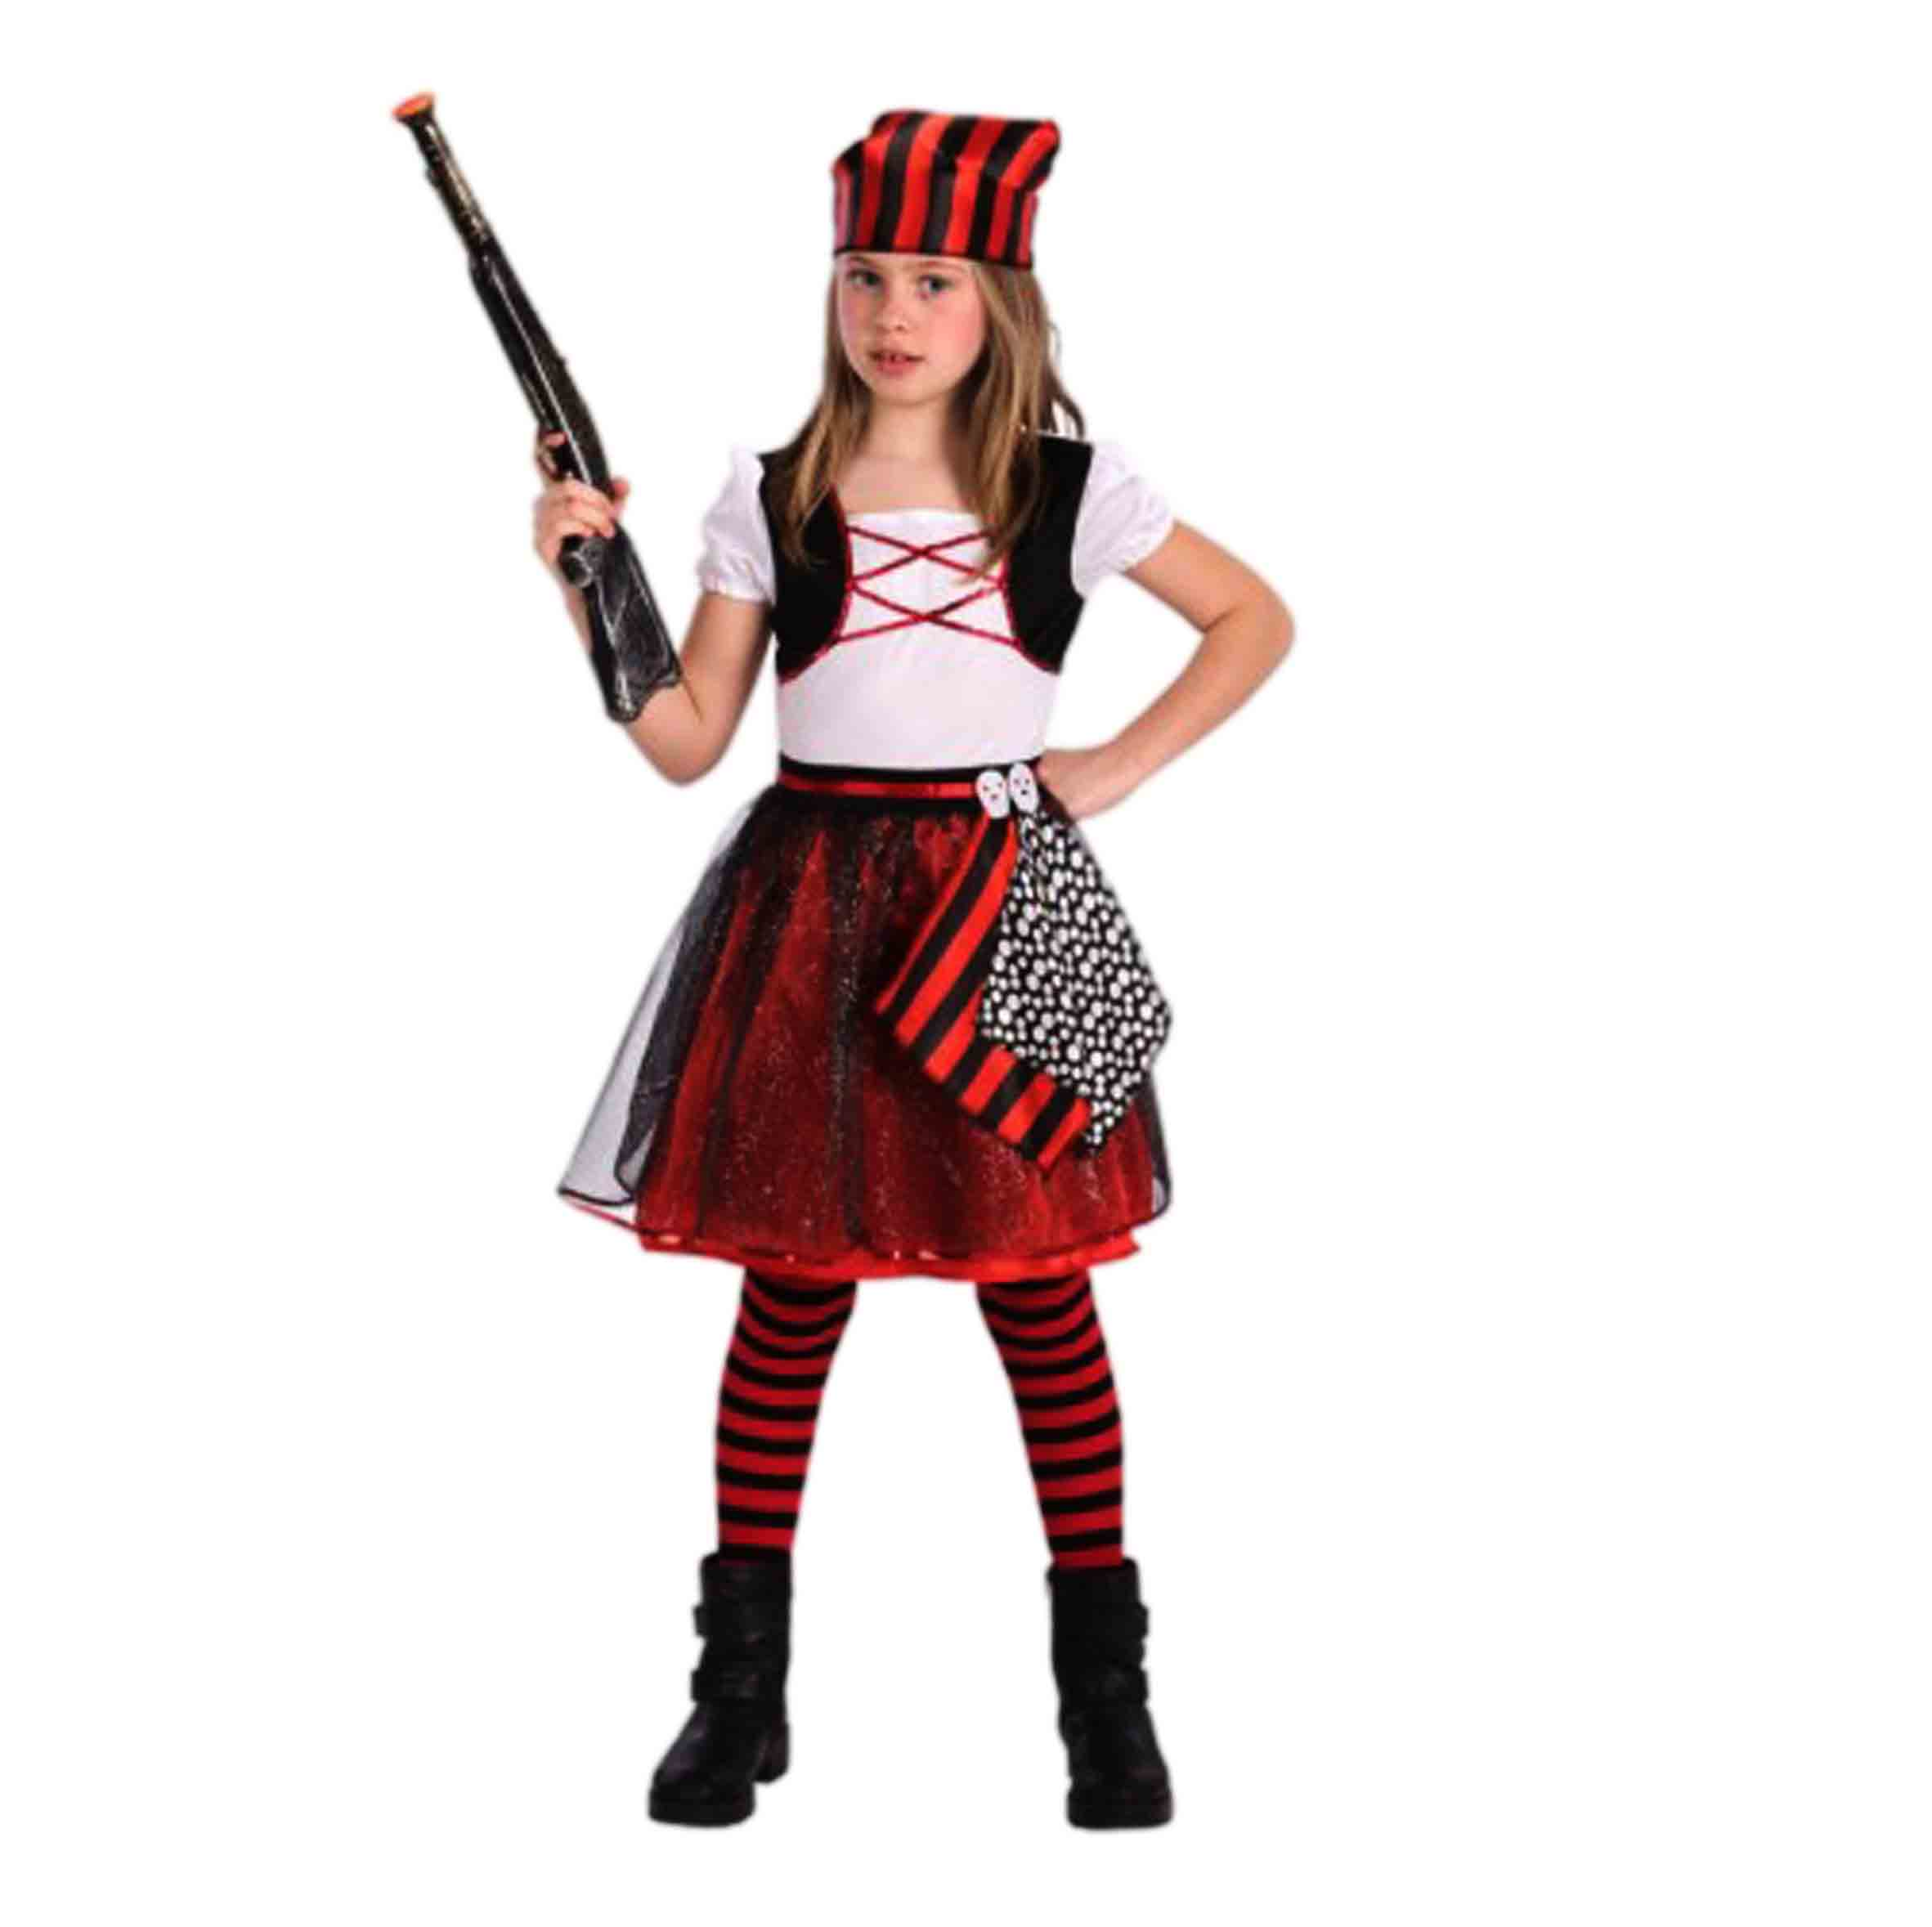 Bambina Piratessa Costume Bambina Piratessa Bambina Piratessa Piratessa Costume Bambina Costume Costume xQhtdosrBC